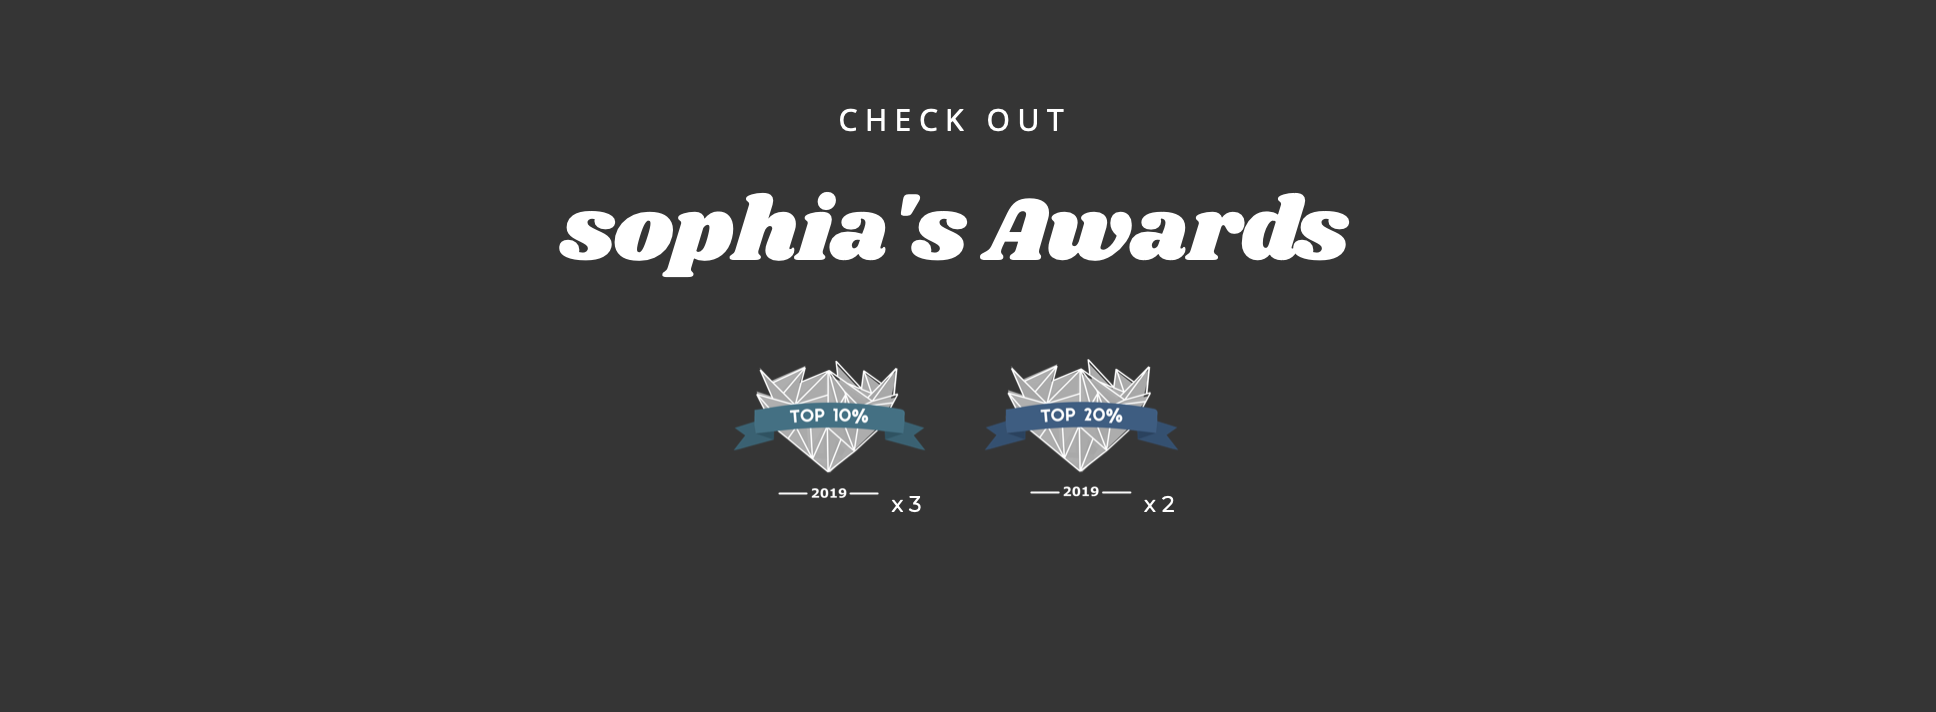 Sophia's awards shoot and share 2019 UK